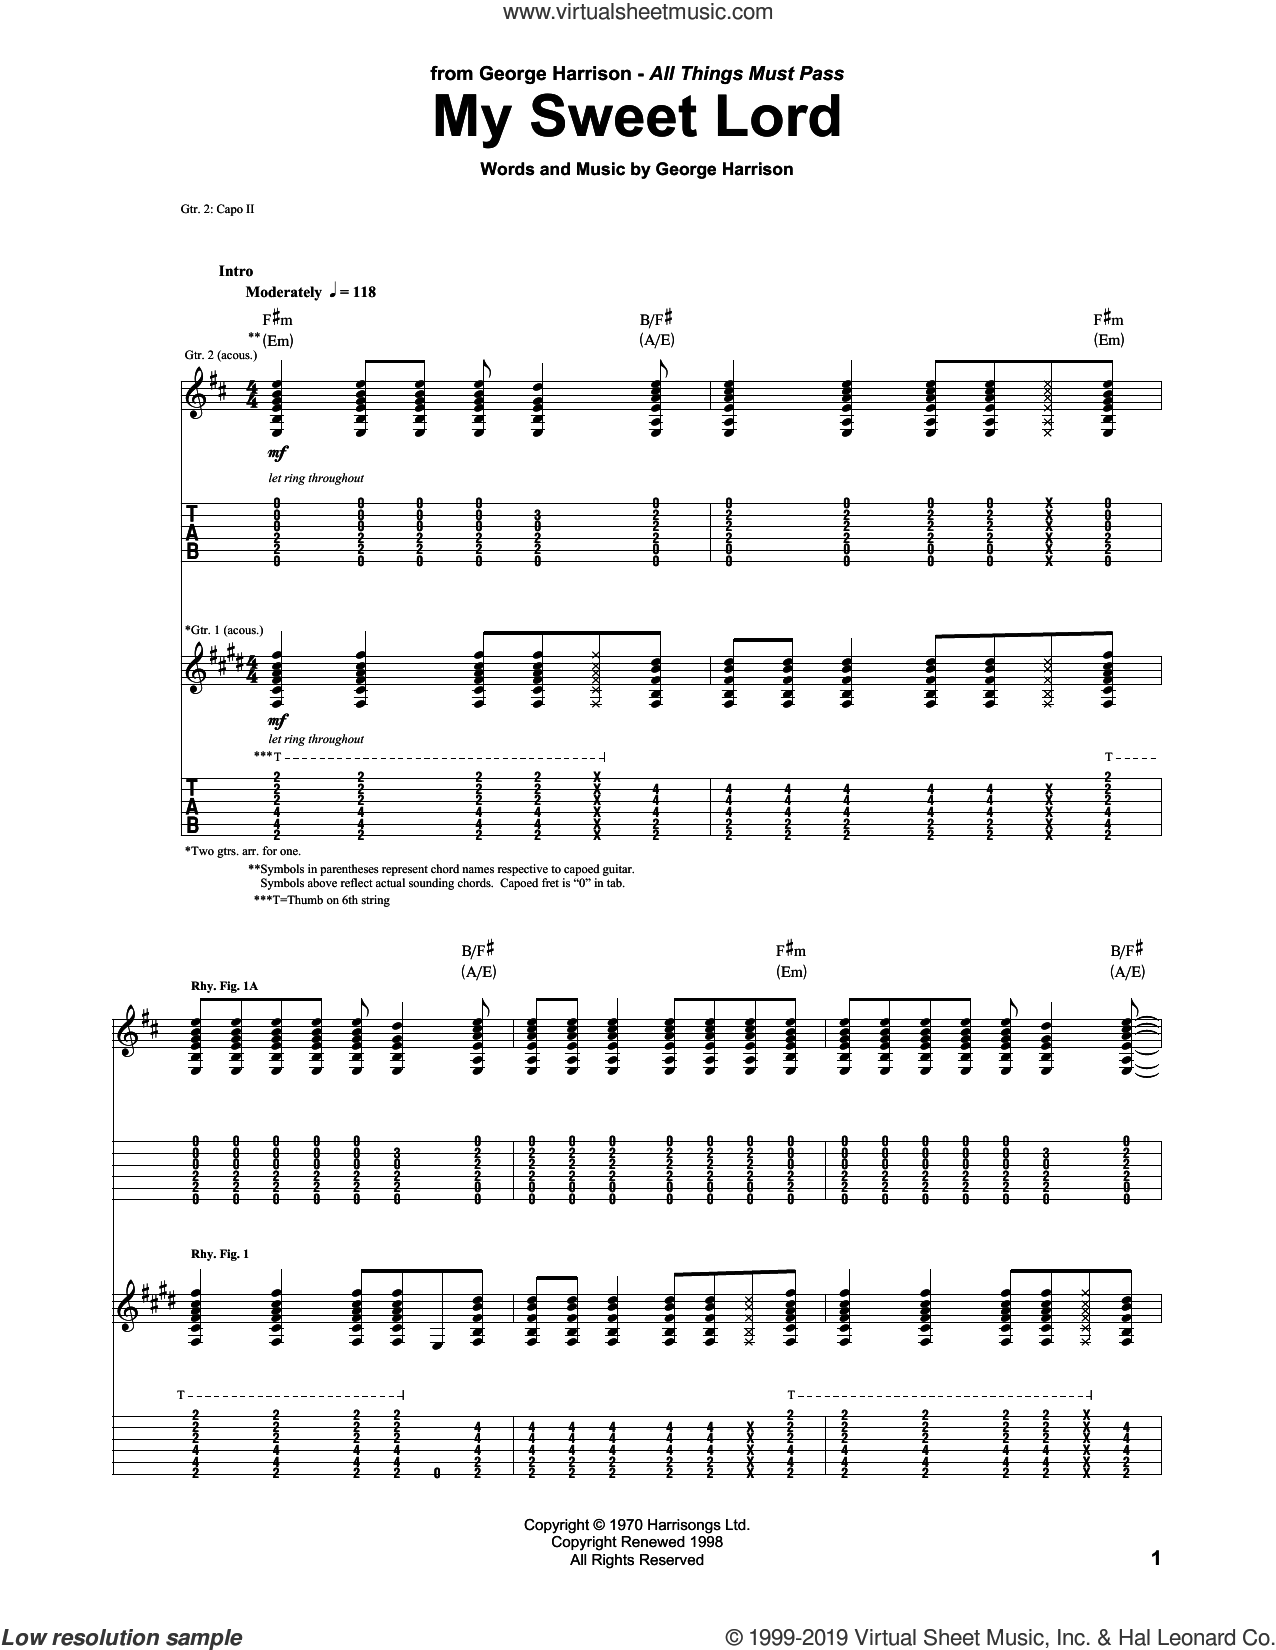 My Sweet Lord sheet music for guitar (tablature) by George Harrison, intermediate skill level